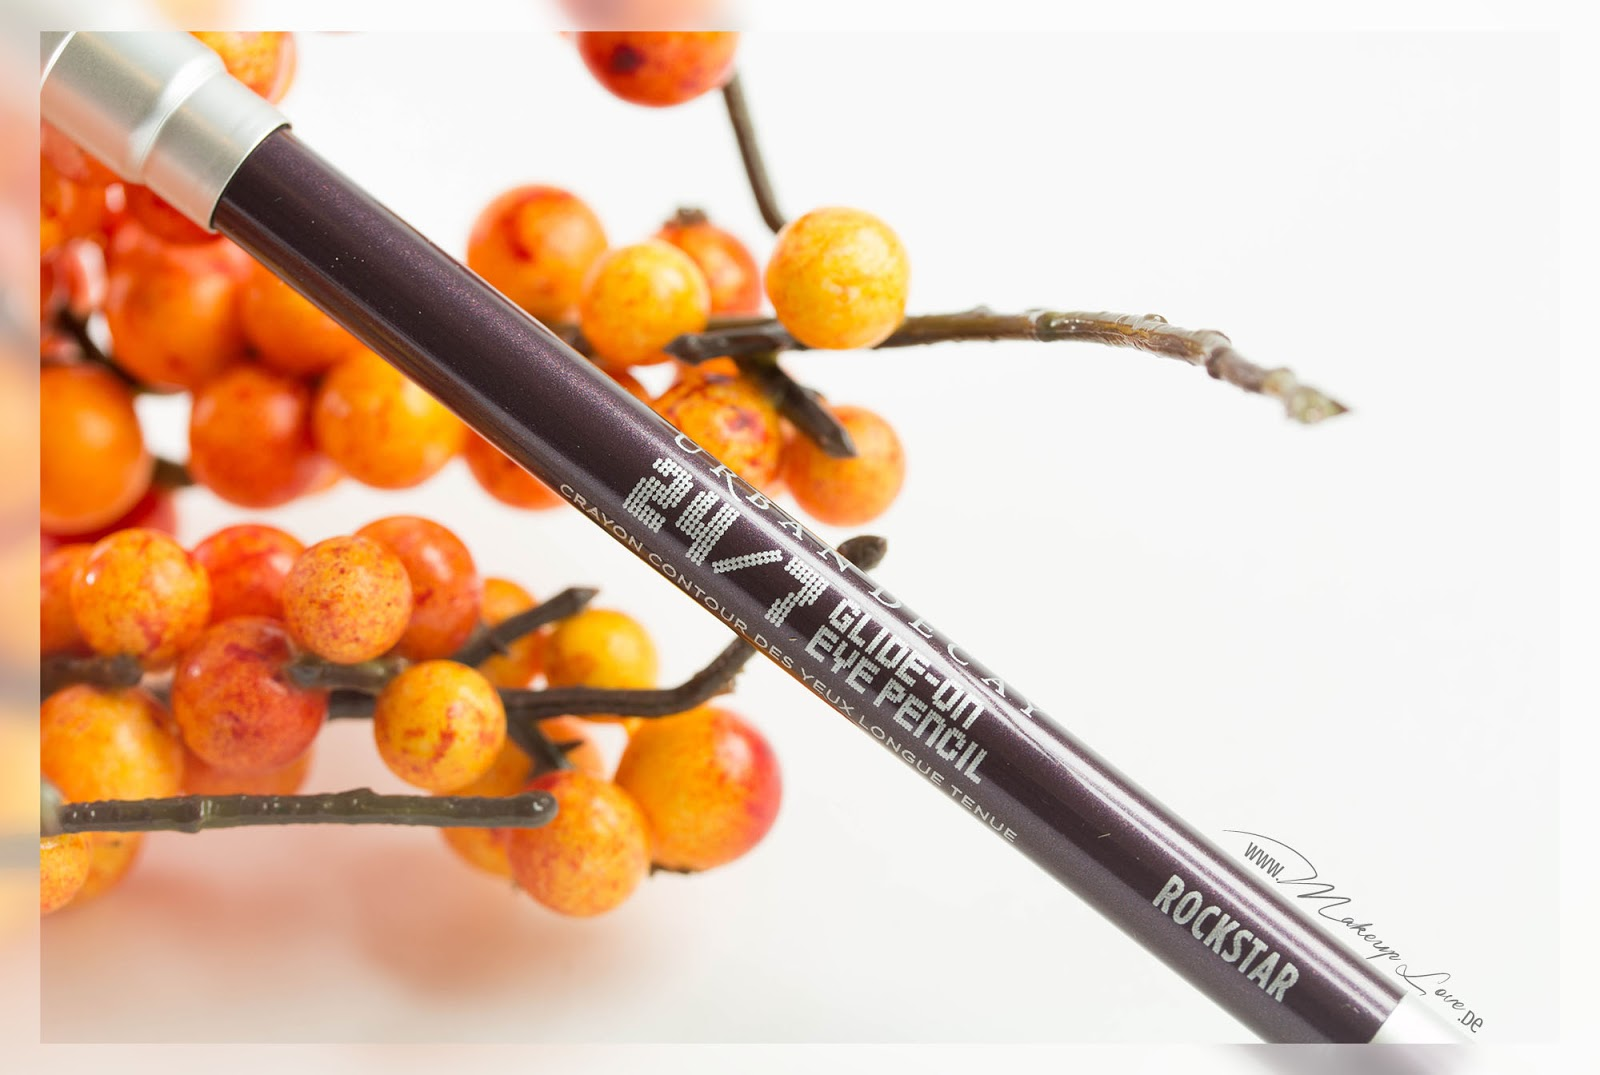 urban decay 24/7 glide on pencil rockstar